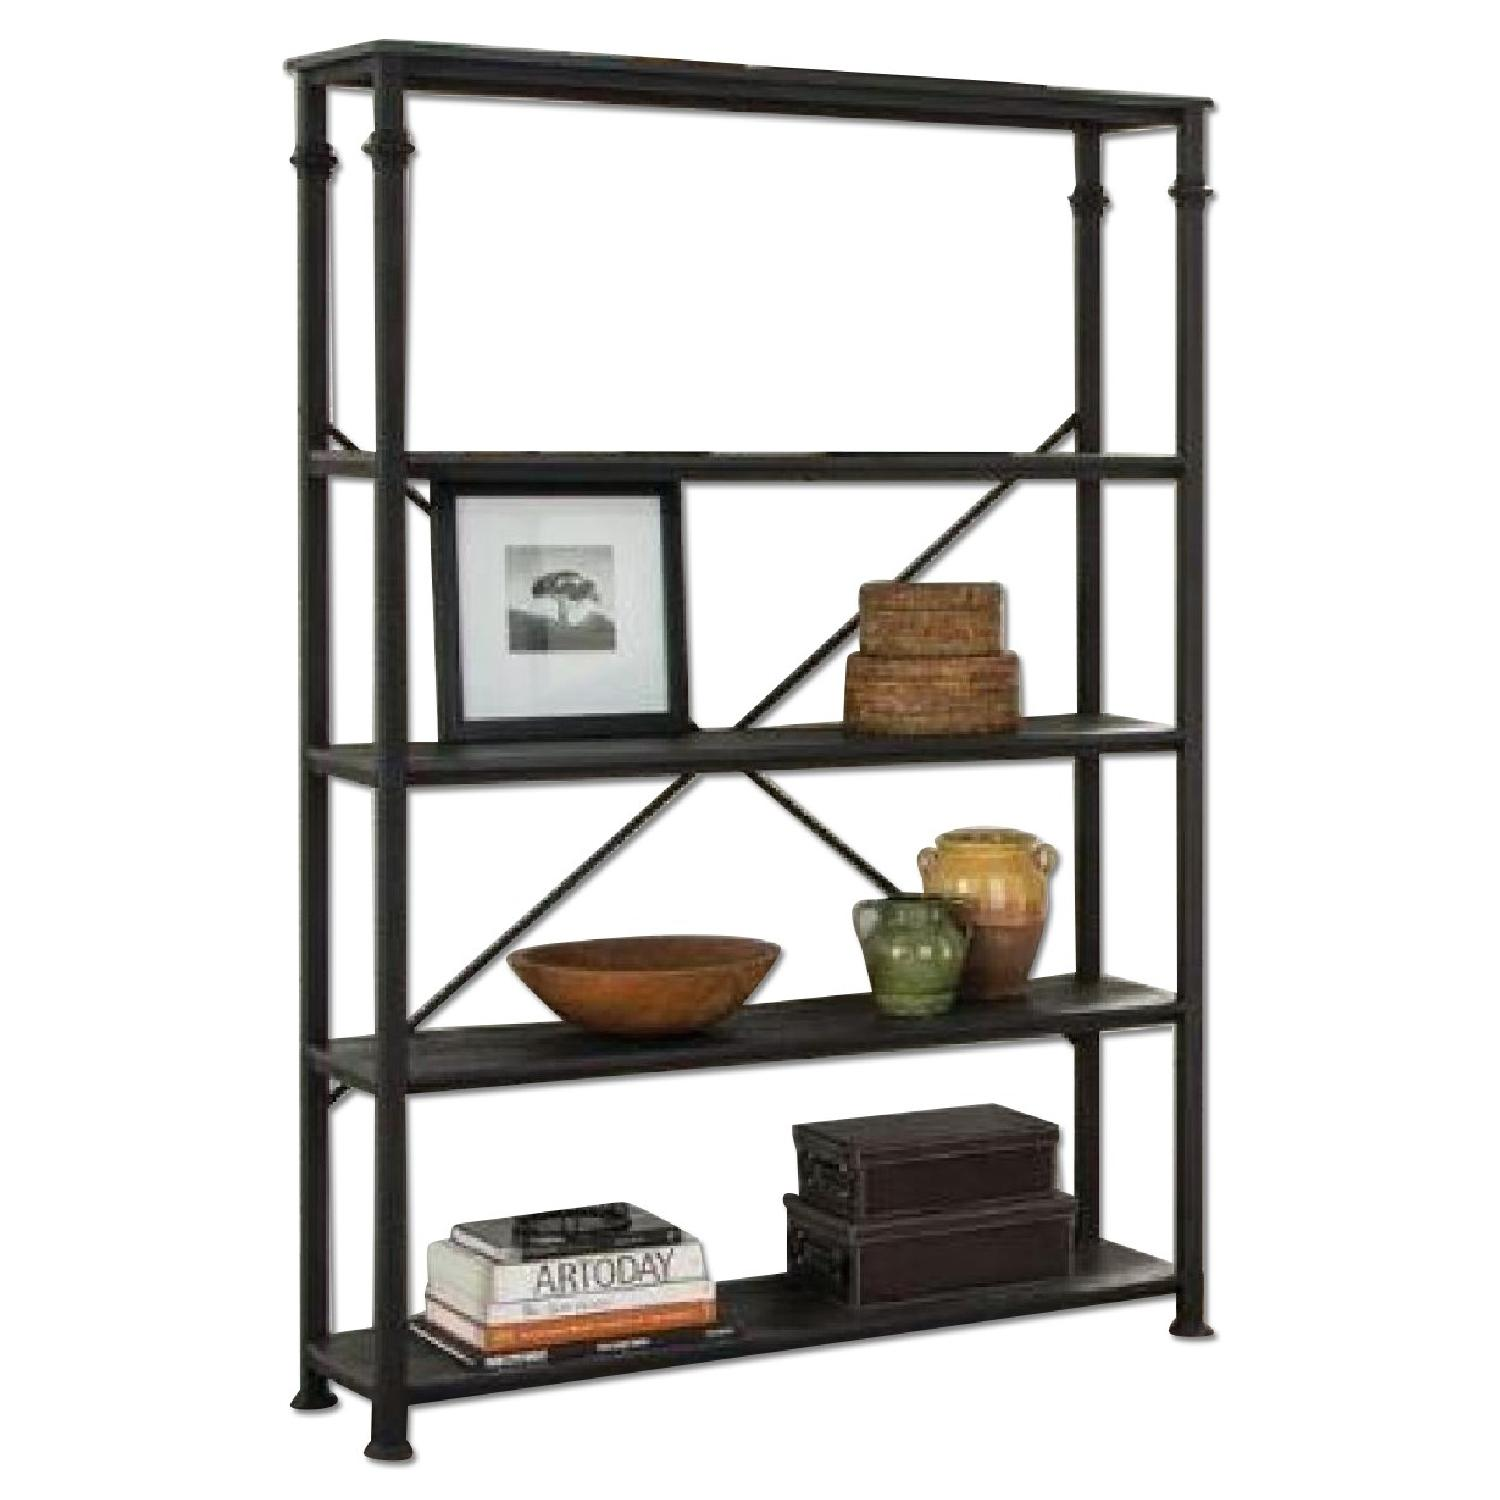 Industrial Style Wide Bookcase w/ Black Frame